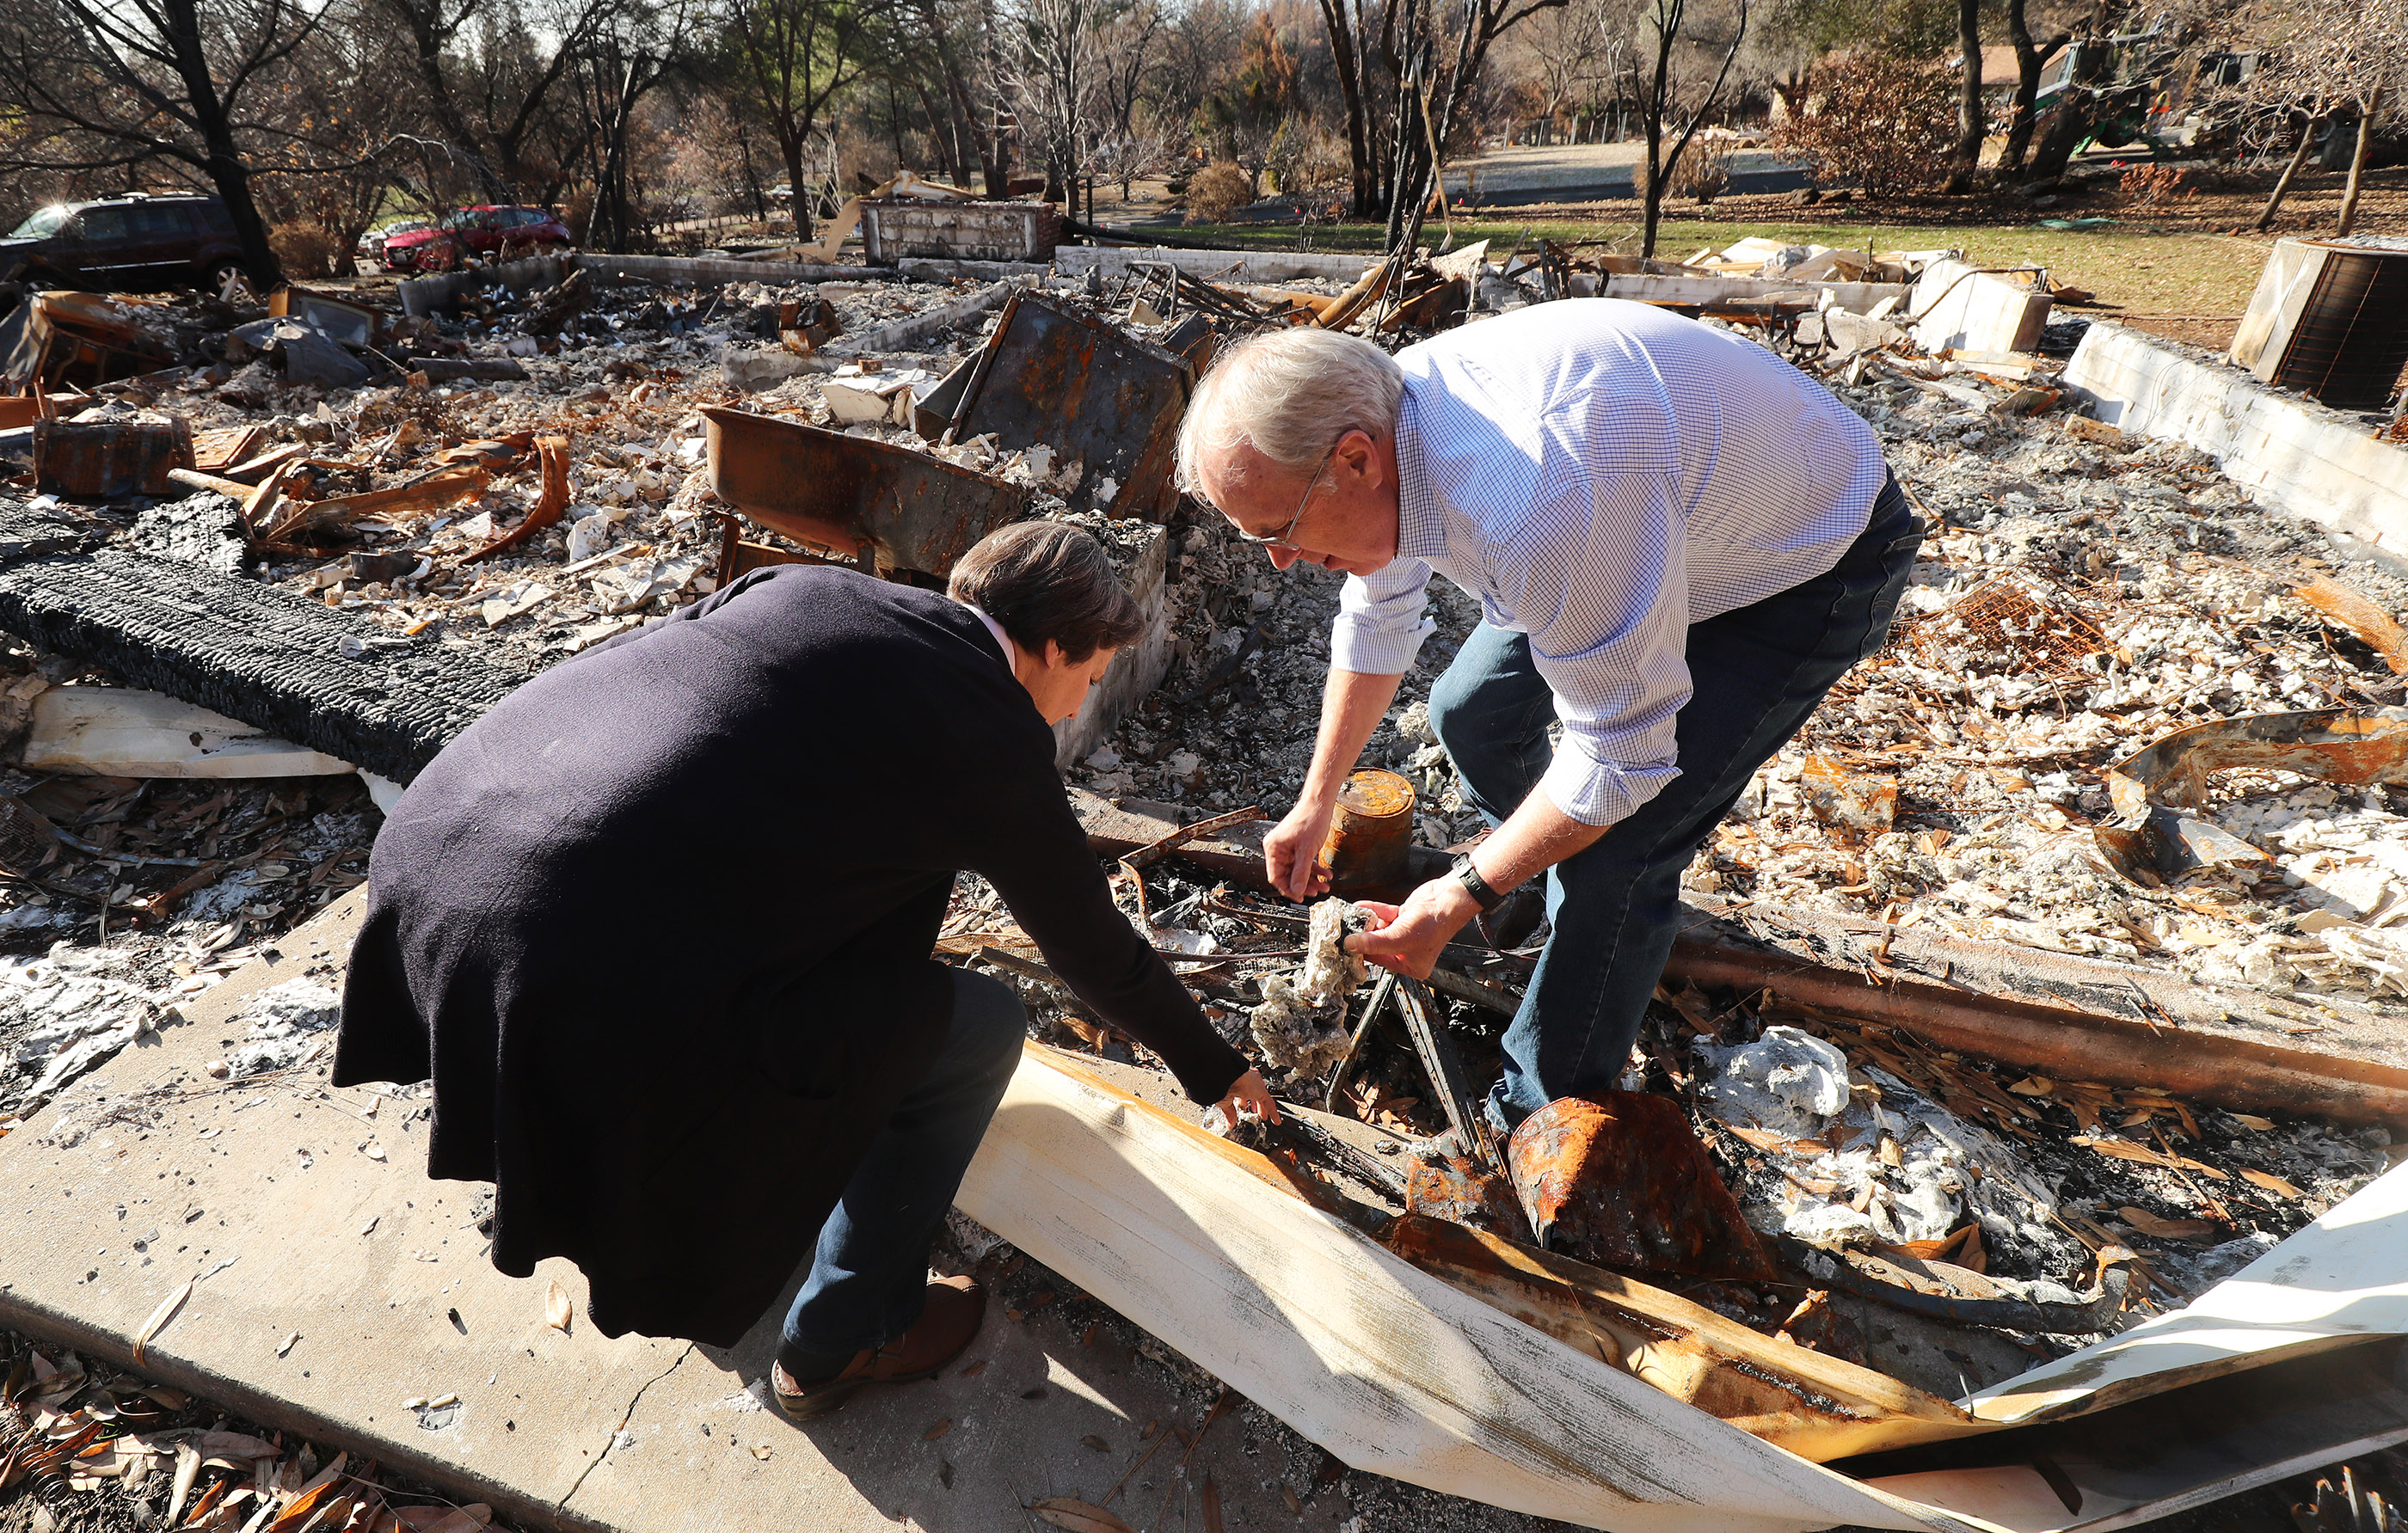 Rick and Kathie Turner find items as they look over their destroyed home in Paradise, California, on Saturday, Jan. 12, 2019, two months after the Camp Fire destroyed more than 18,000 homes and businesses.